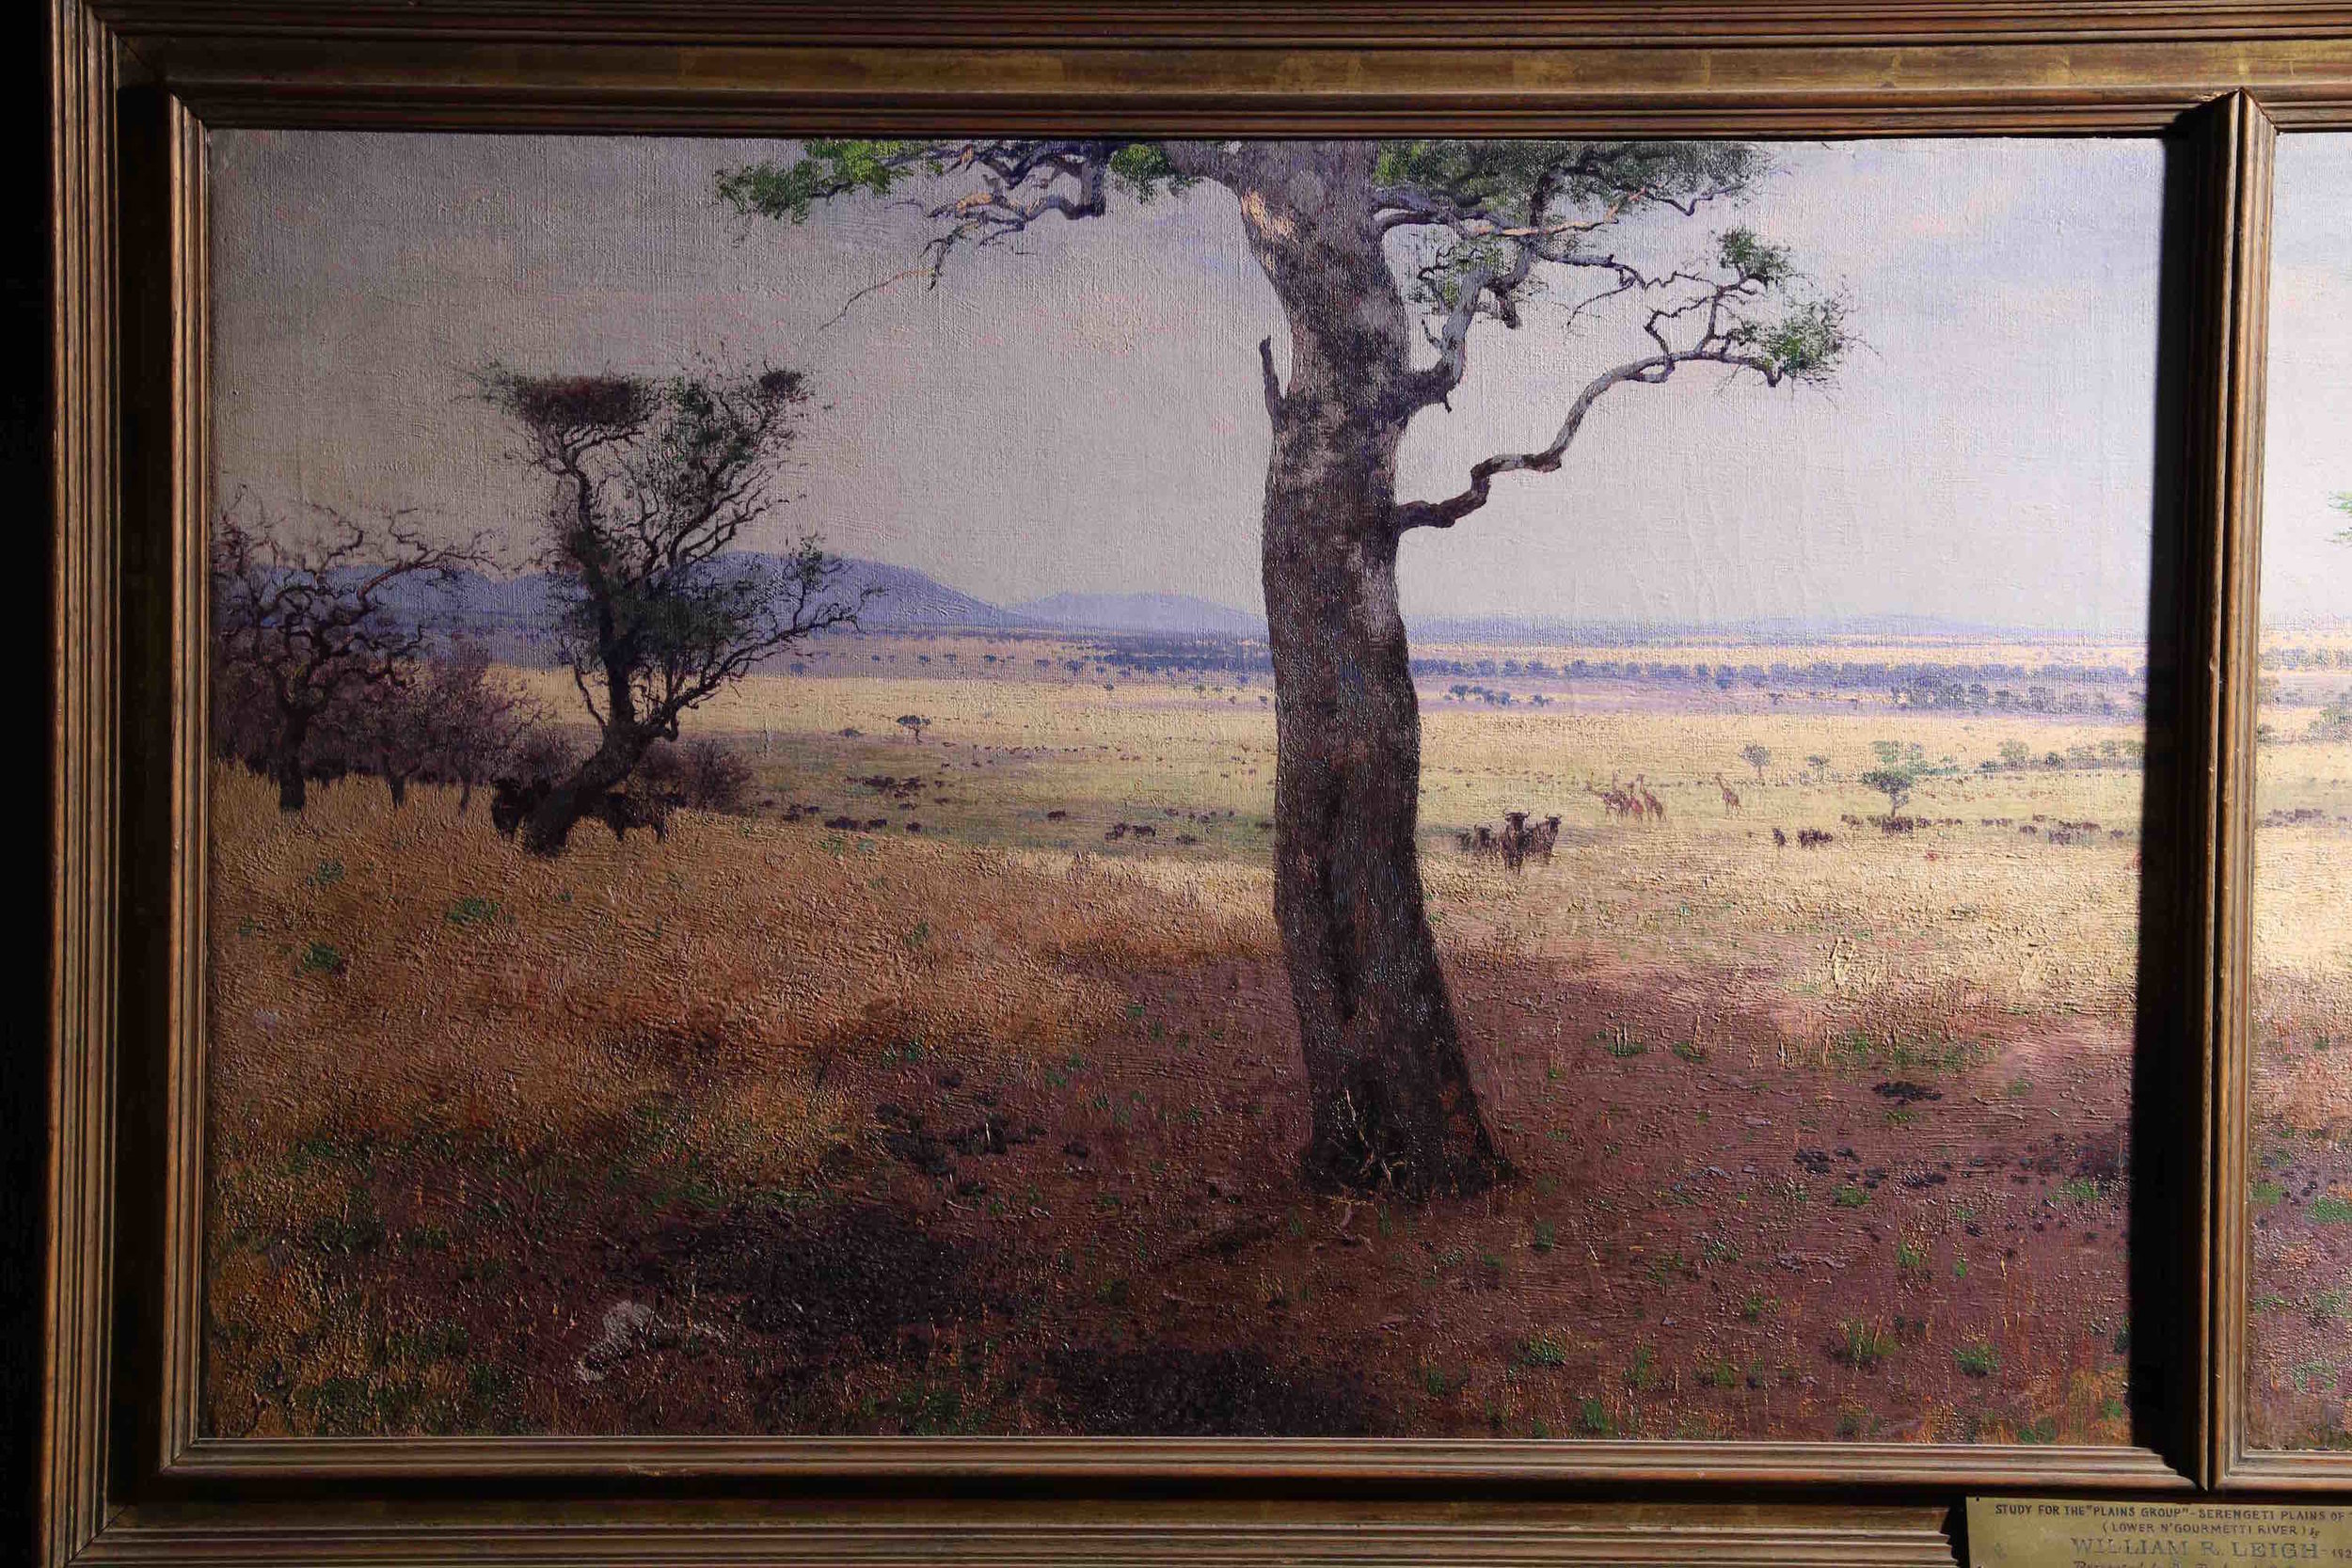 On site sketch of Serengeti plains, William Leigh